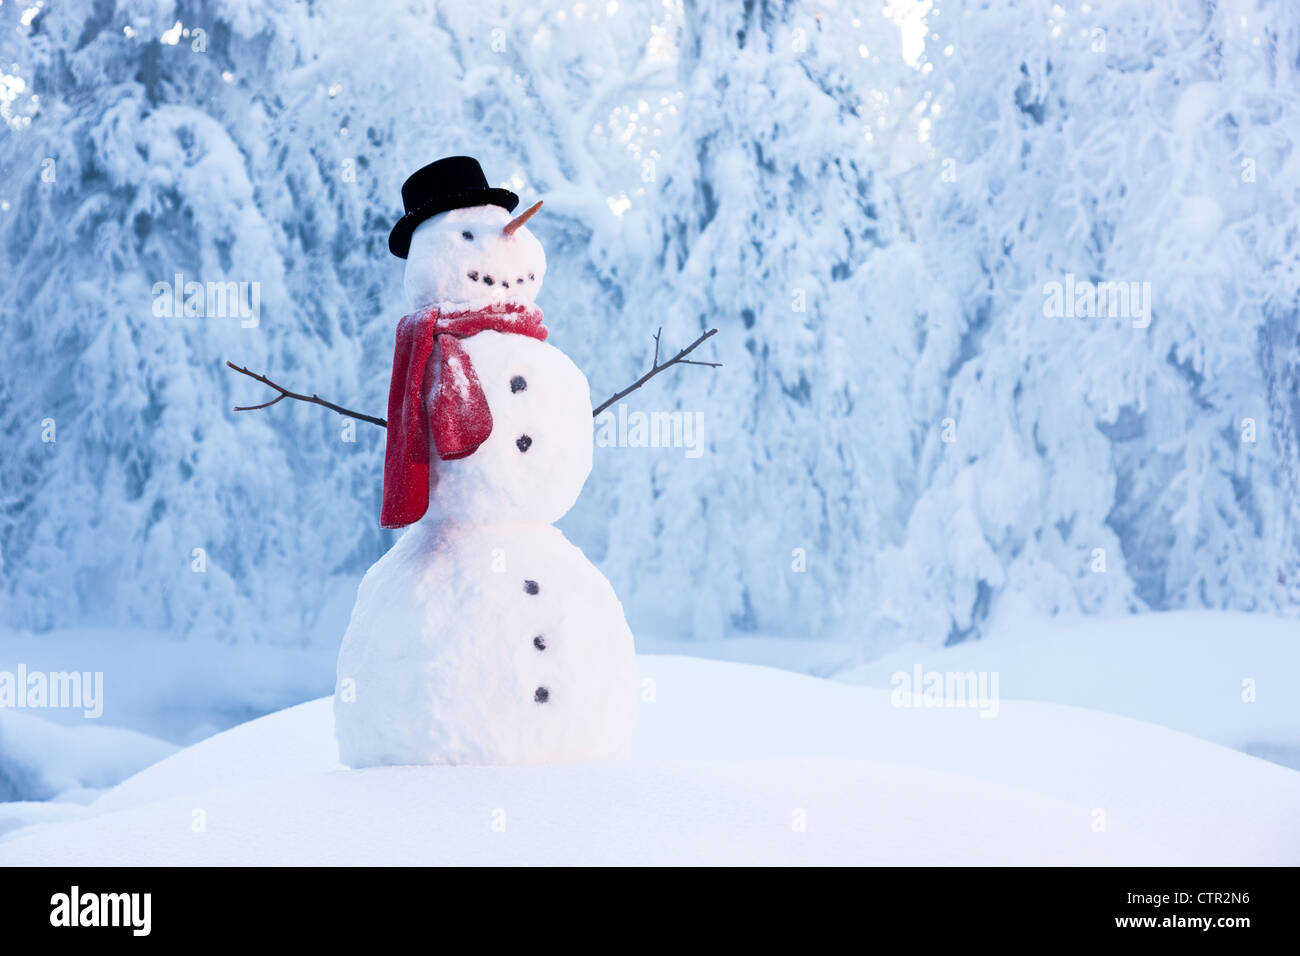 Snowman standing amongst hoar frosted trees Russian Jack Springs Park Anchorage Southcentral Alaska Winter Digitally - Stock Image